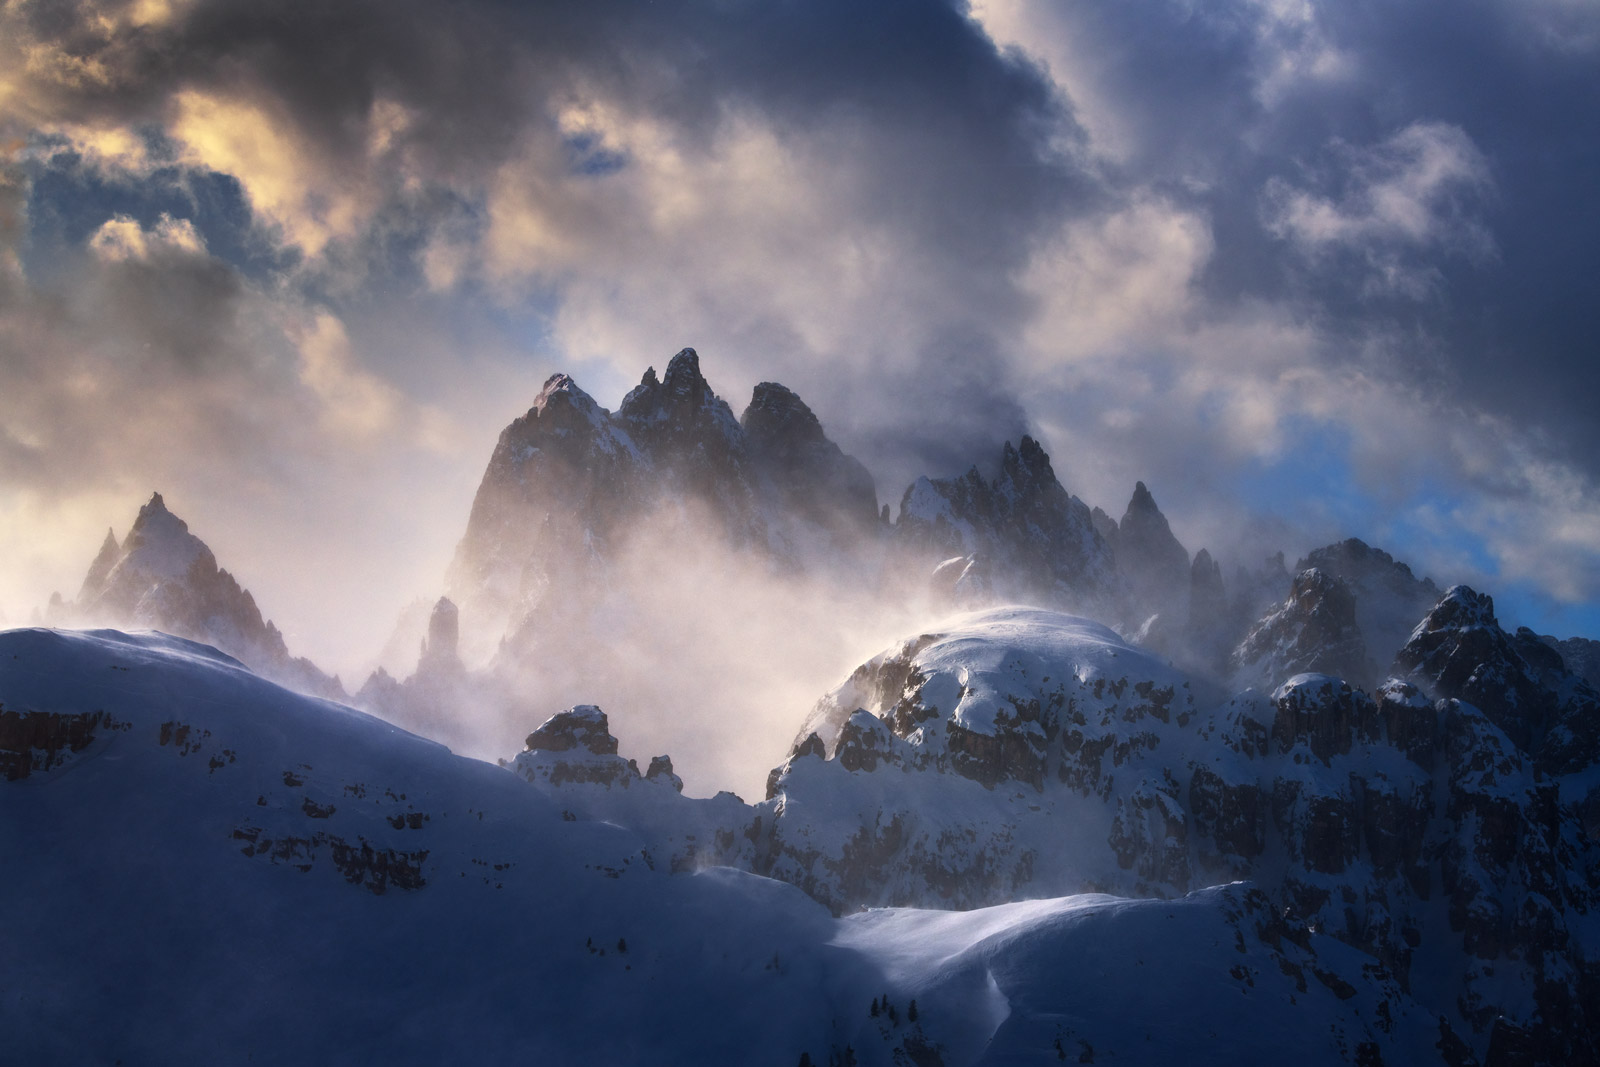 Italy, Dolomites, Mountains, Snowstorm, Winds, Snow